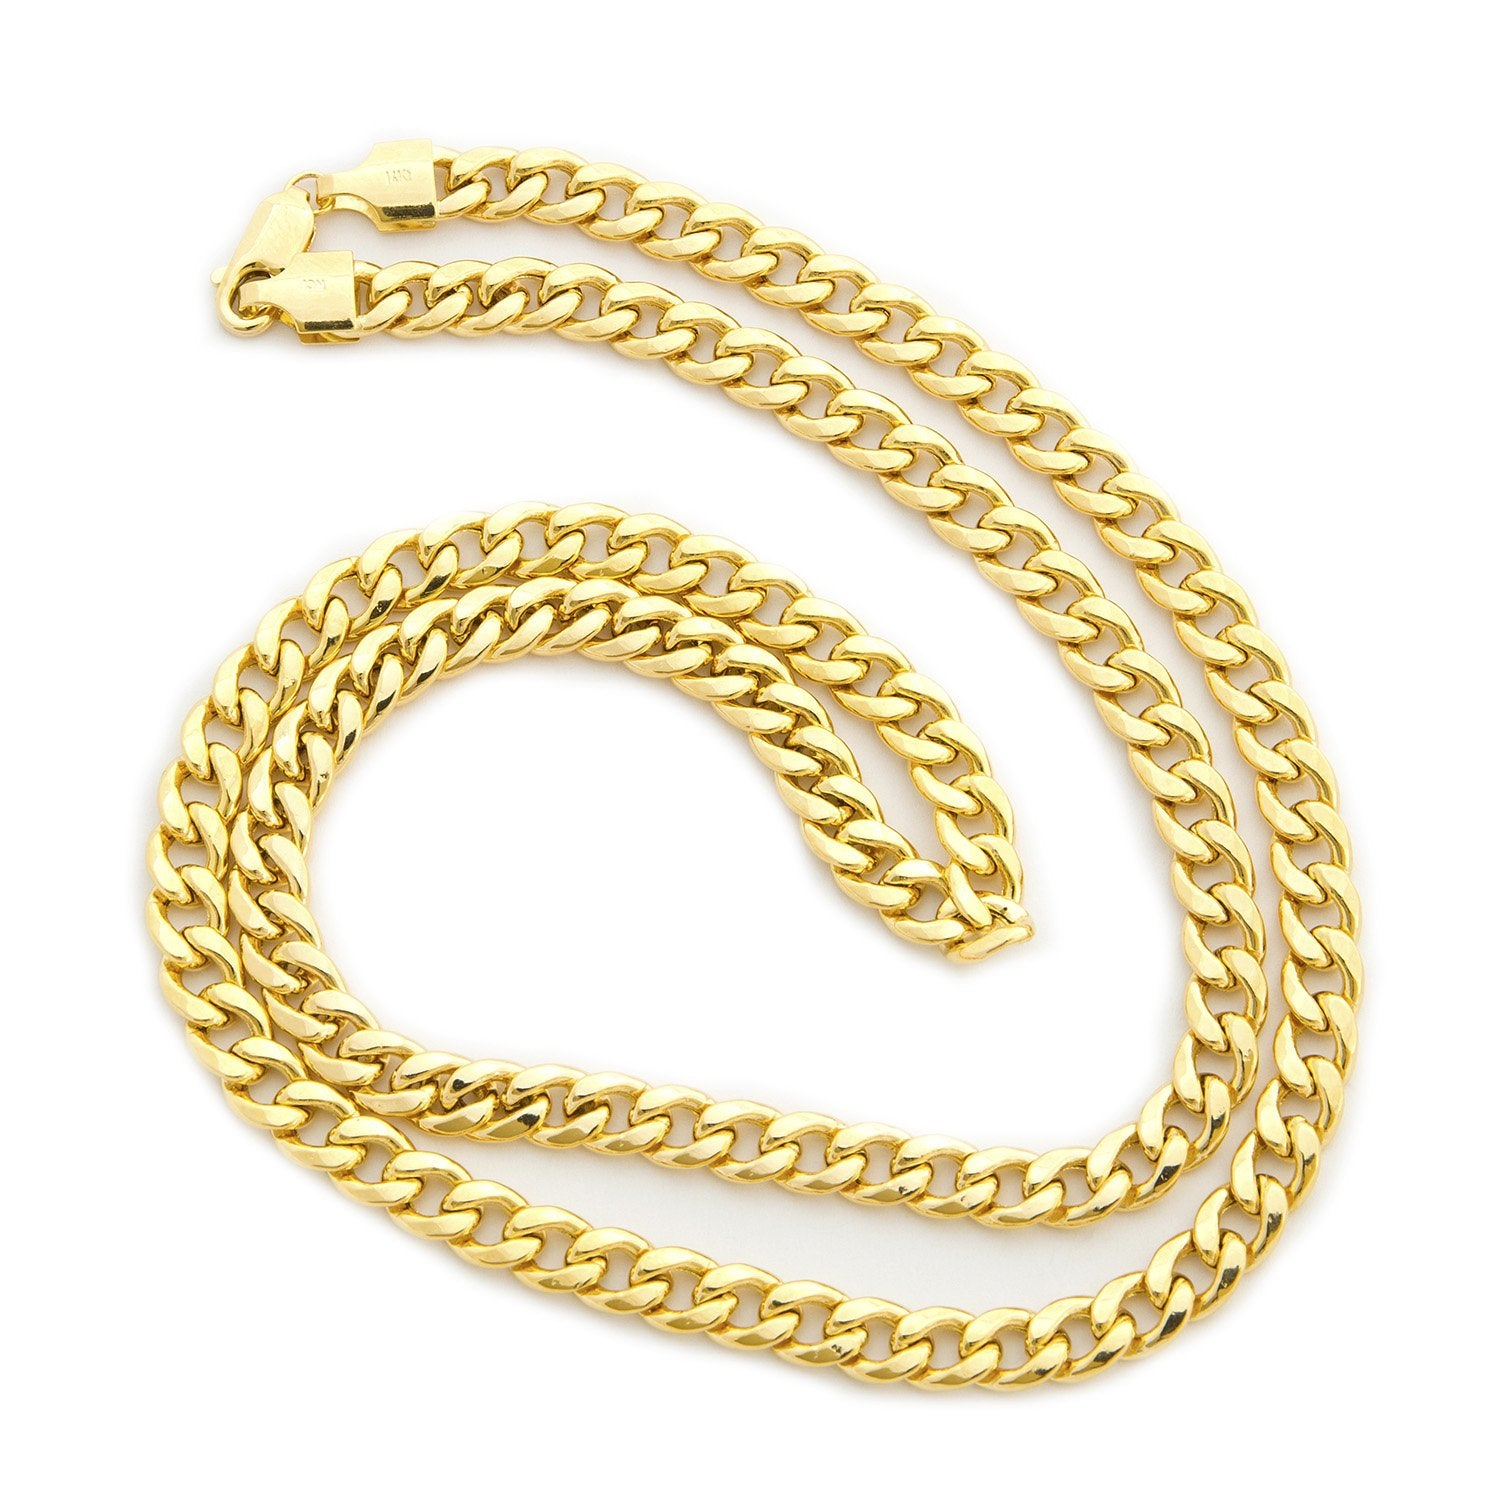 61bd3532cce3a Men's 14k Yellow Gold Lightweight Heavy Miami Cuban Link Chain ...